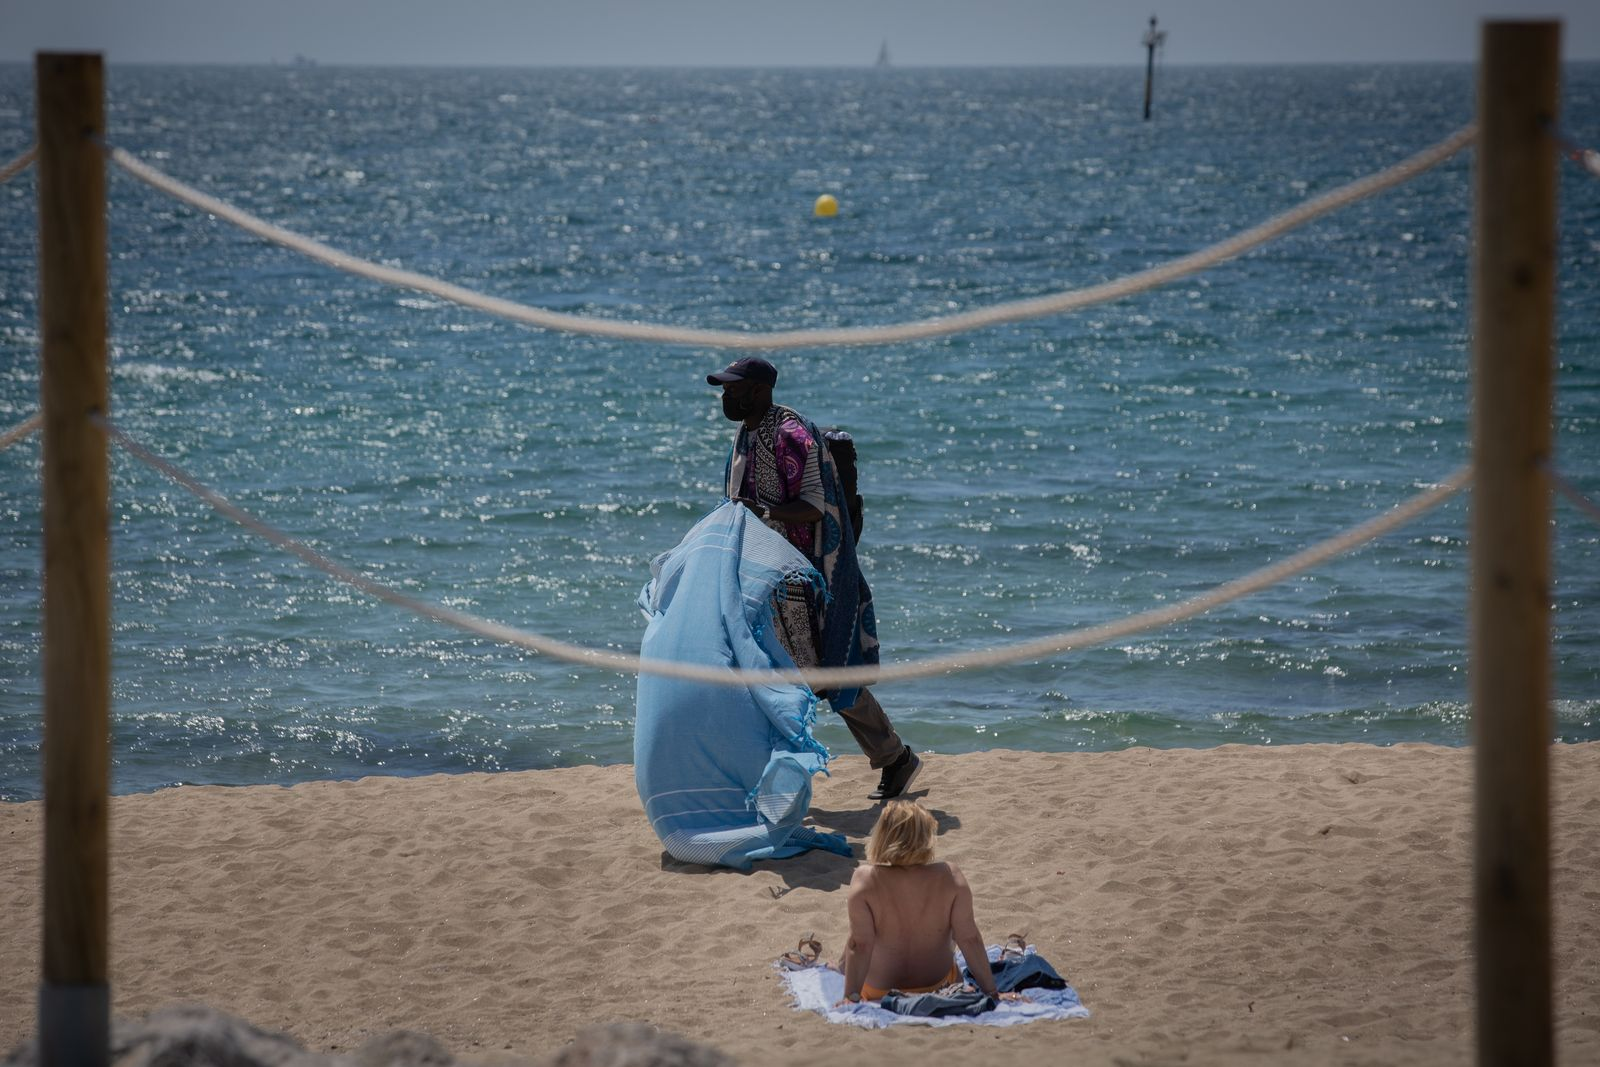 Barcelona Activates The Control Of Capacity On The Beaches